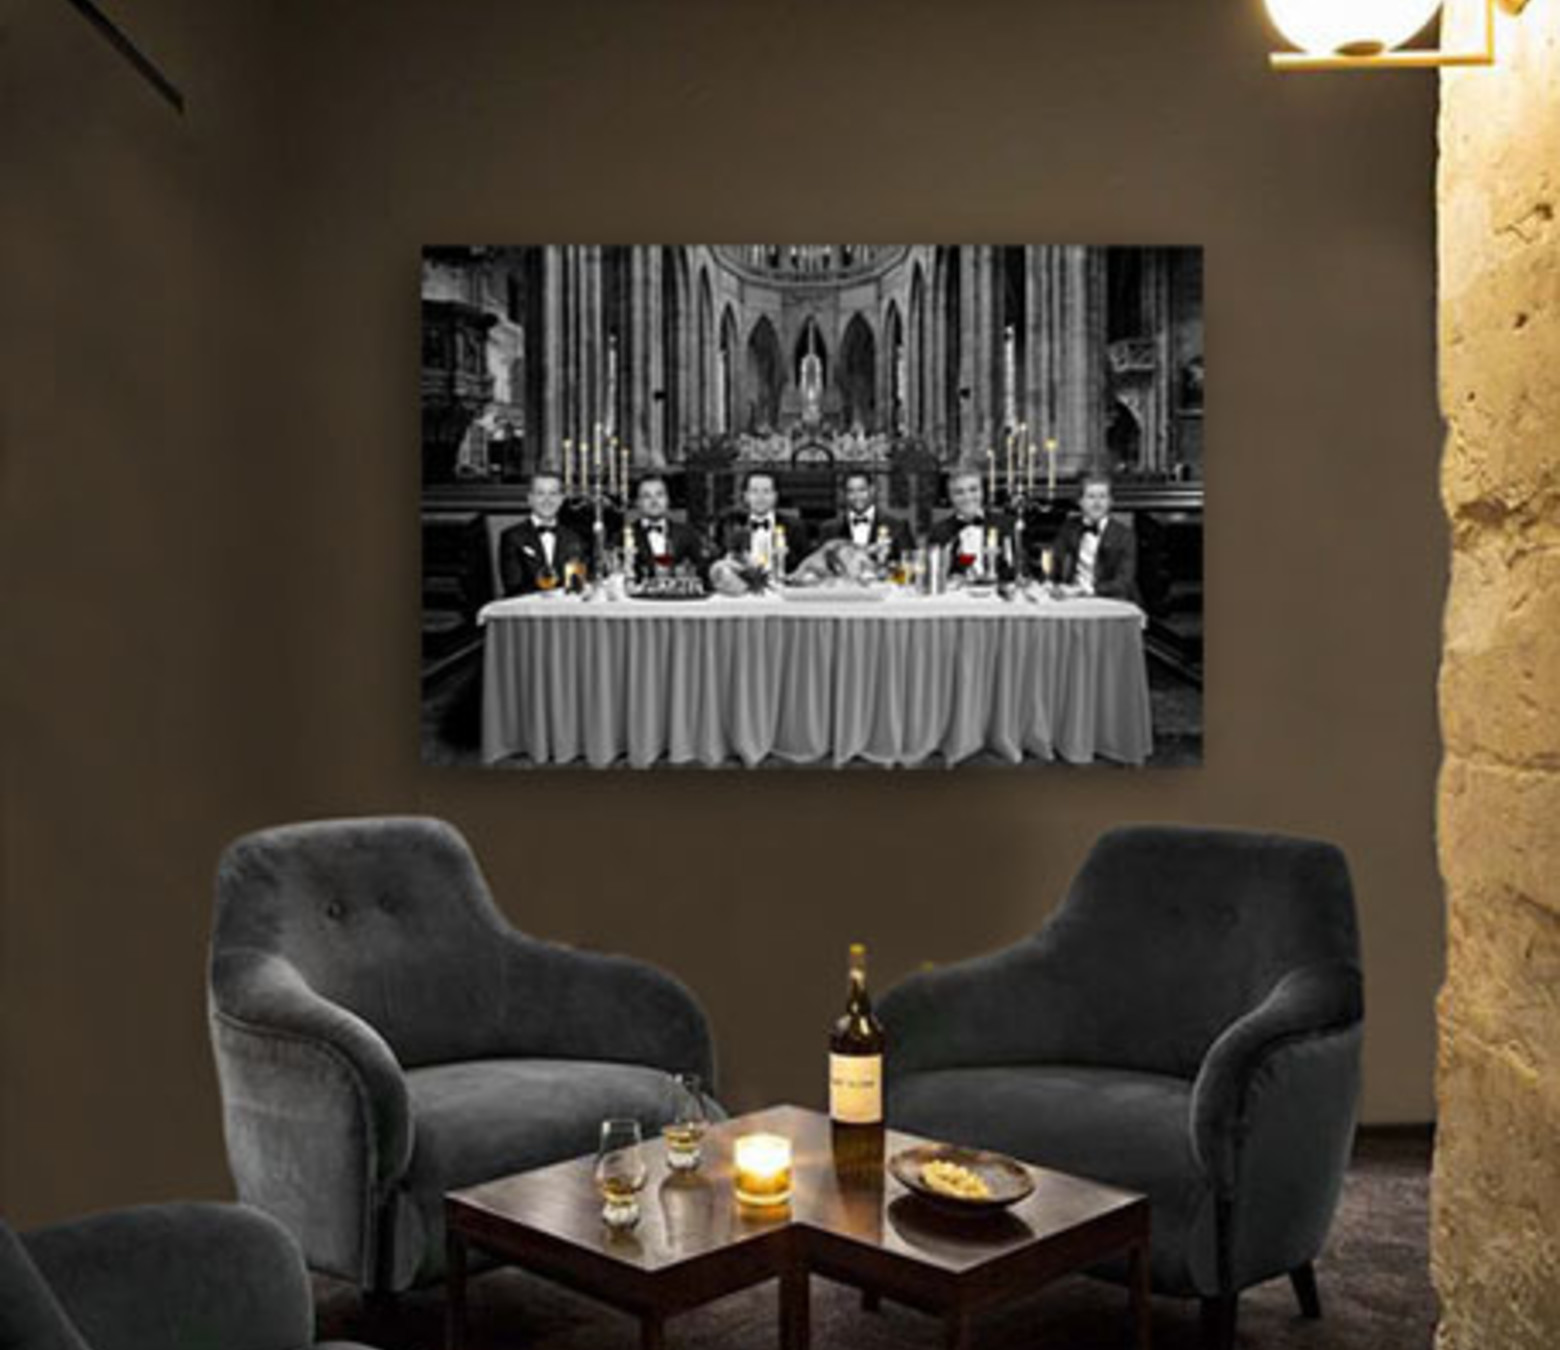 Famous Supper foto-art op dibond